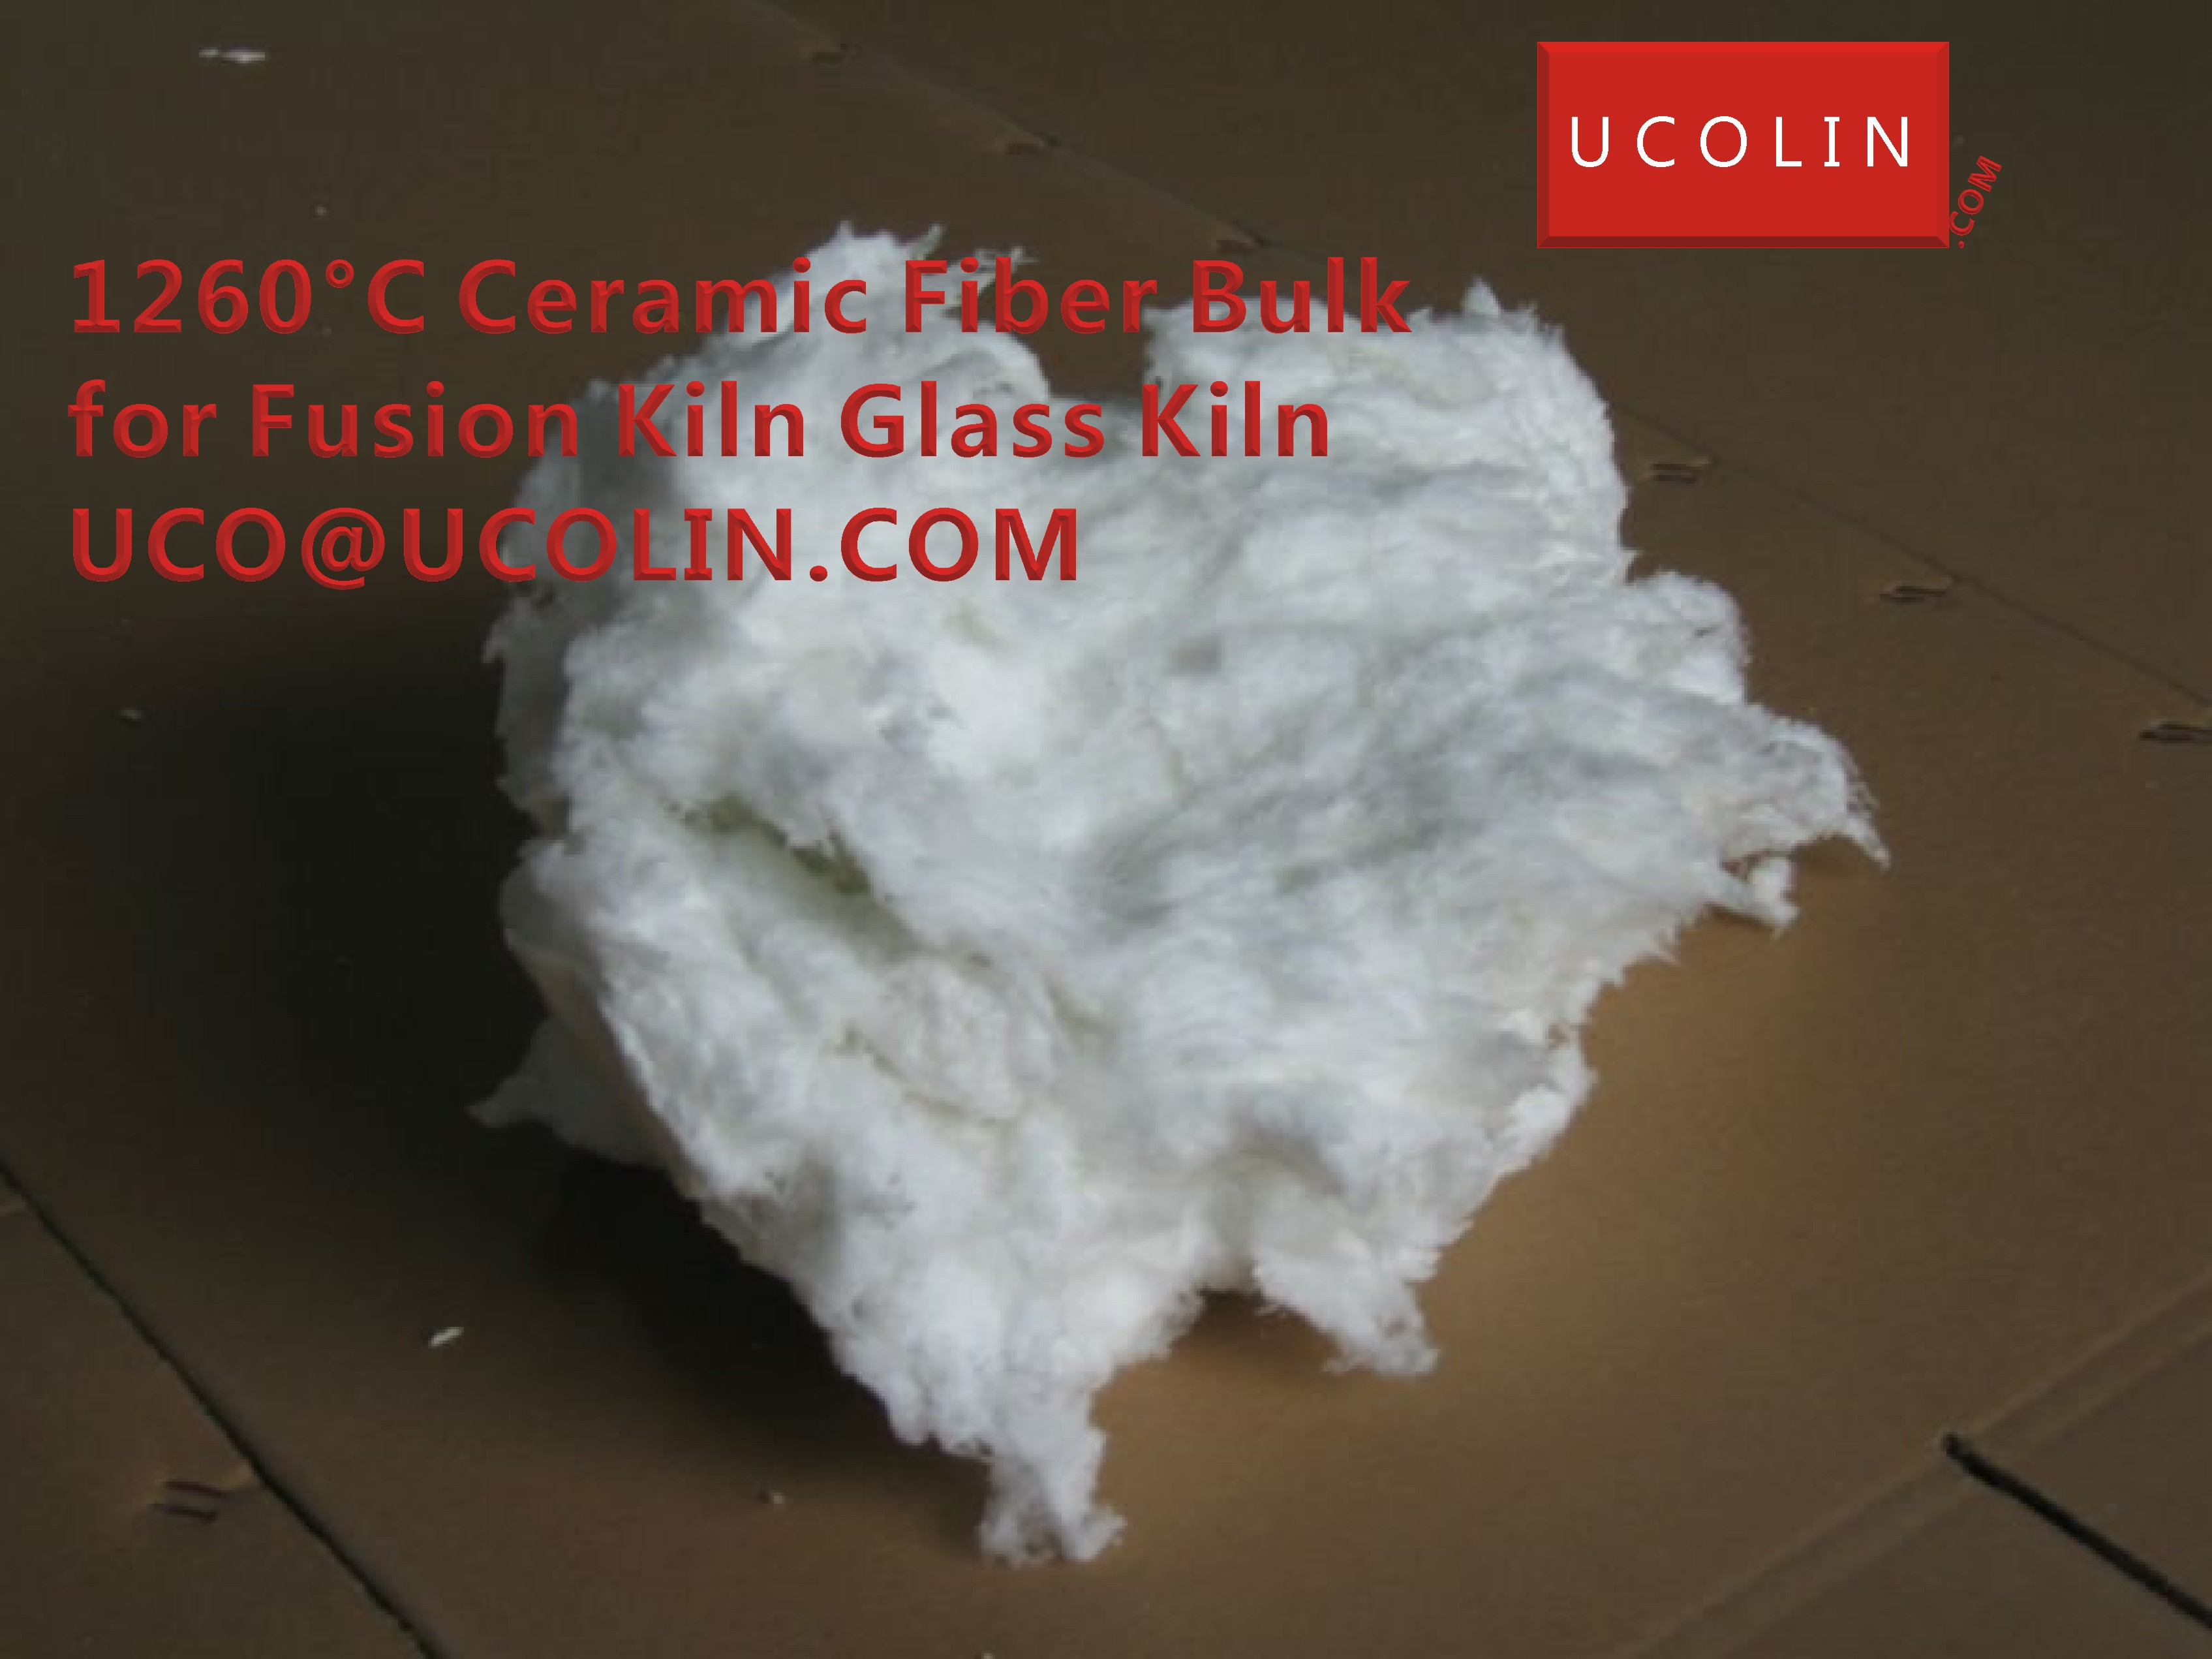 1260°C Ceramic Fiber BULK for Fusion Kiln Glass Kiln